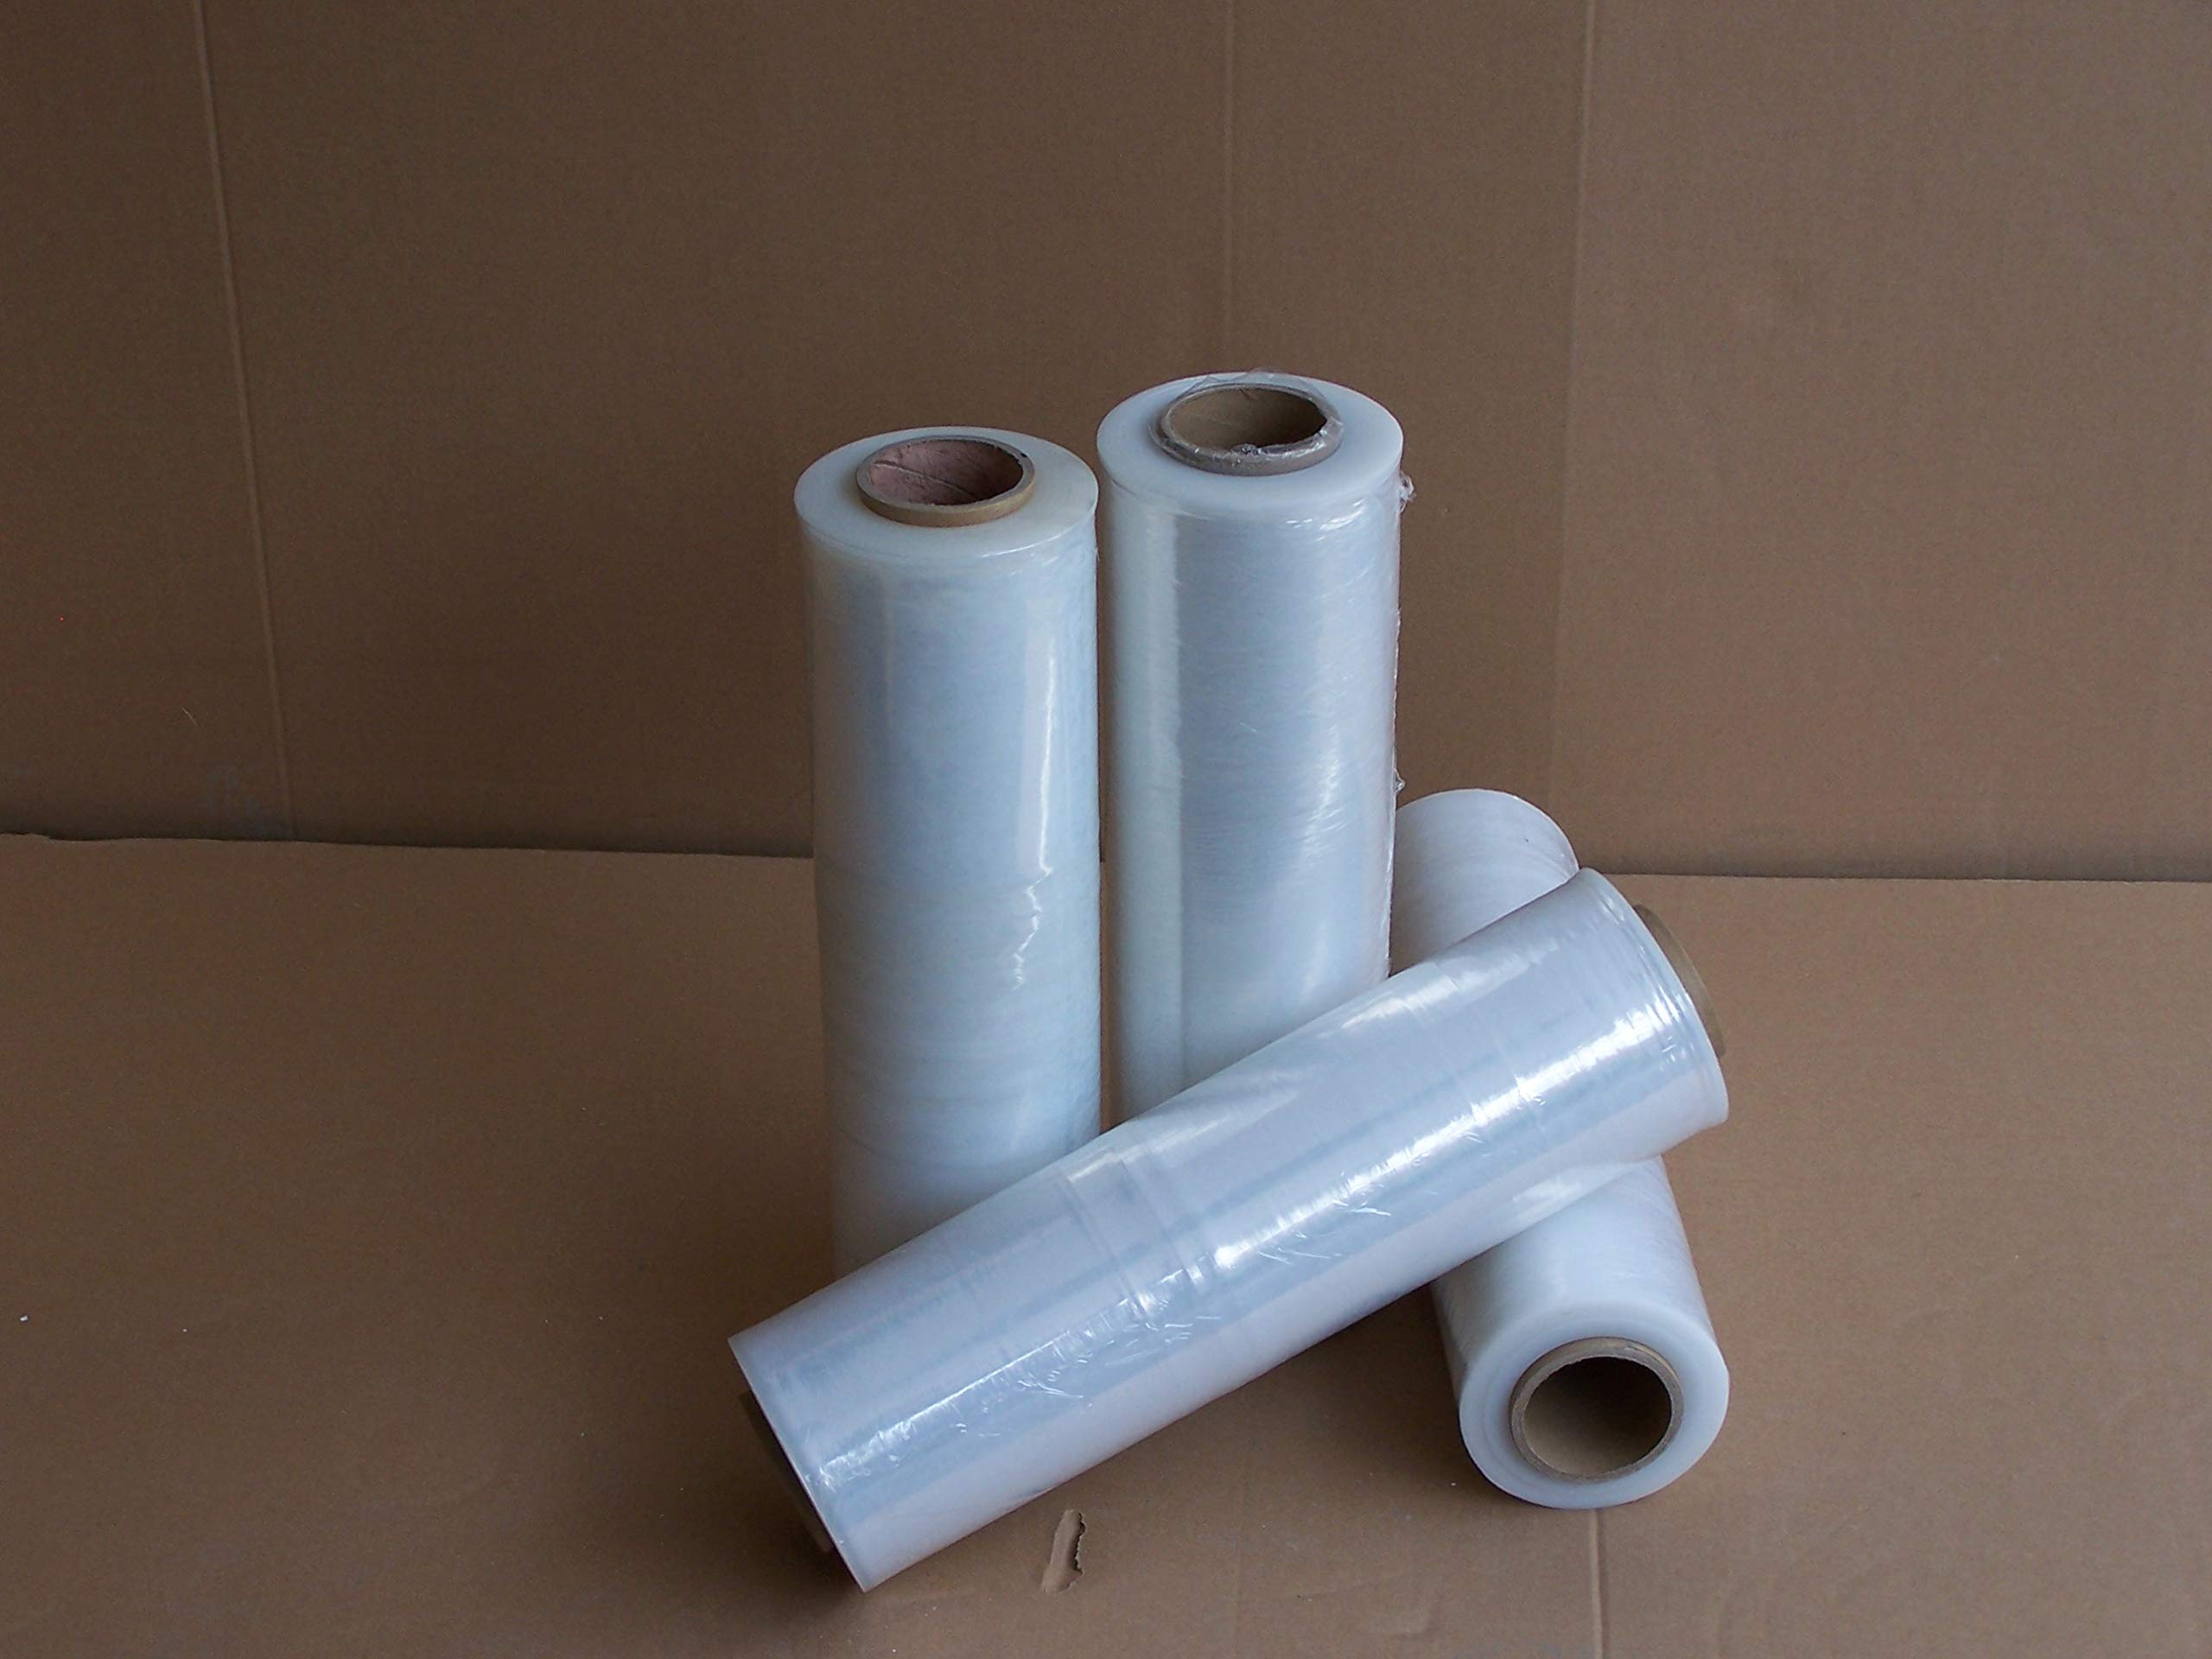 Everyday Essentials 4 Rolls 18'' Stretch Film/Wrap 1500ft 500% Stretch 60 Gauge Clear Cling Durable Adhering Packing Moving Packaging Heavy Duty Shrink Film, Clear